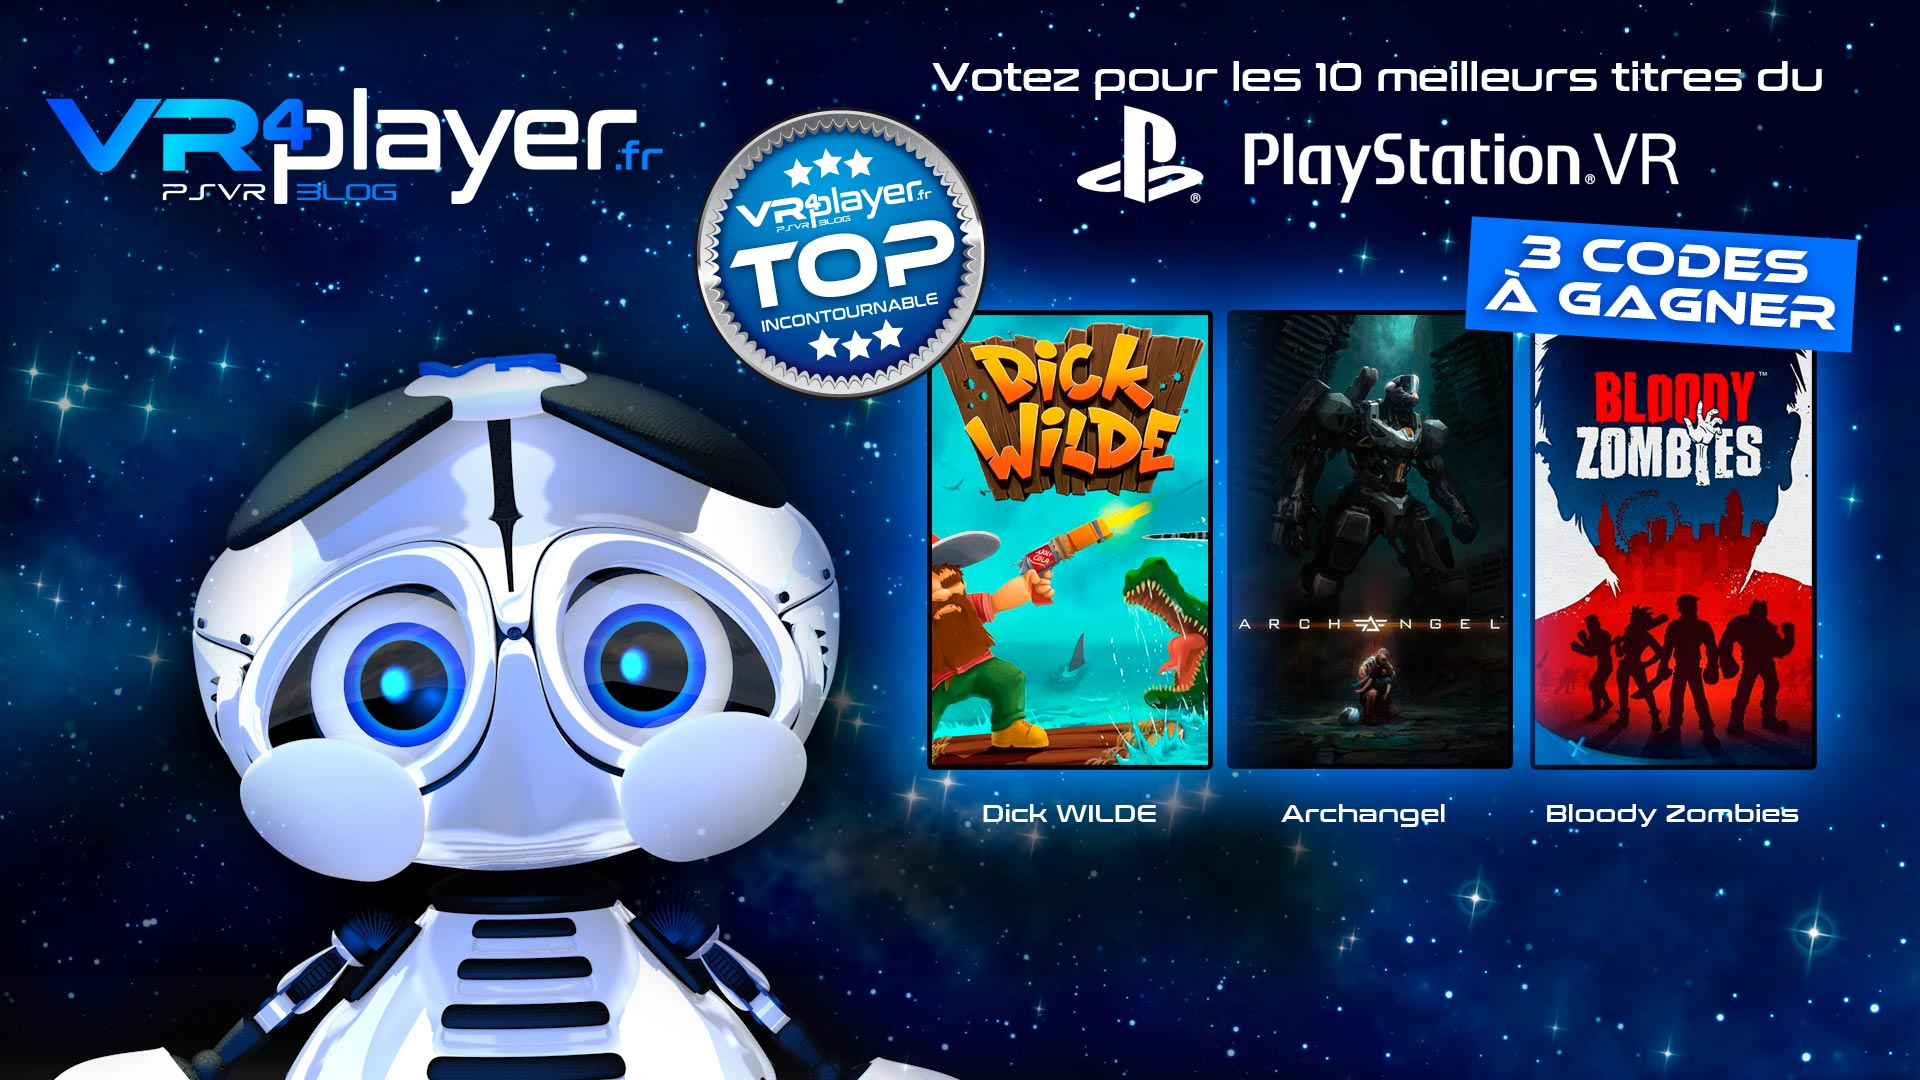 concours top 10 PlayStation VR